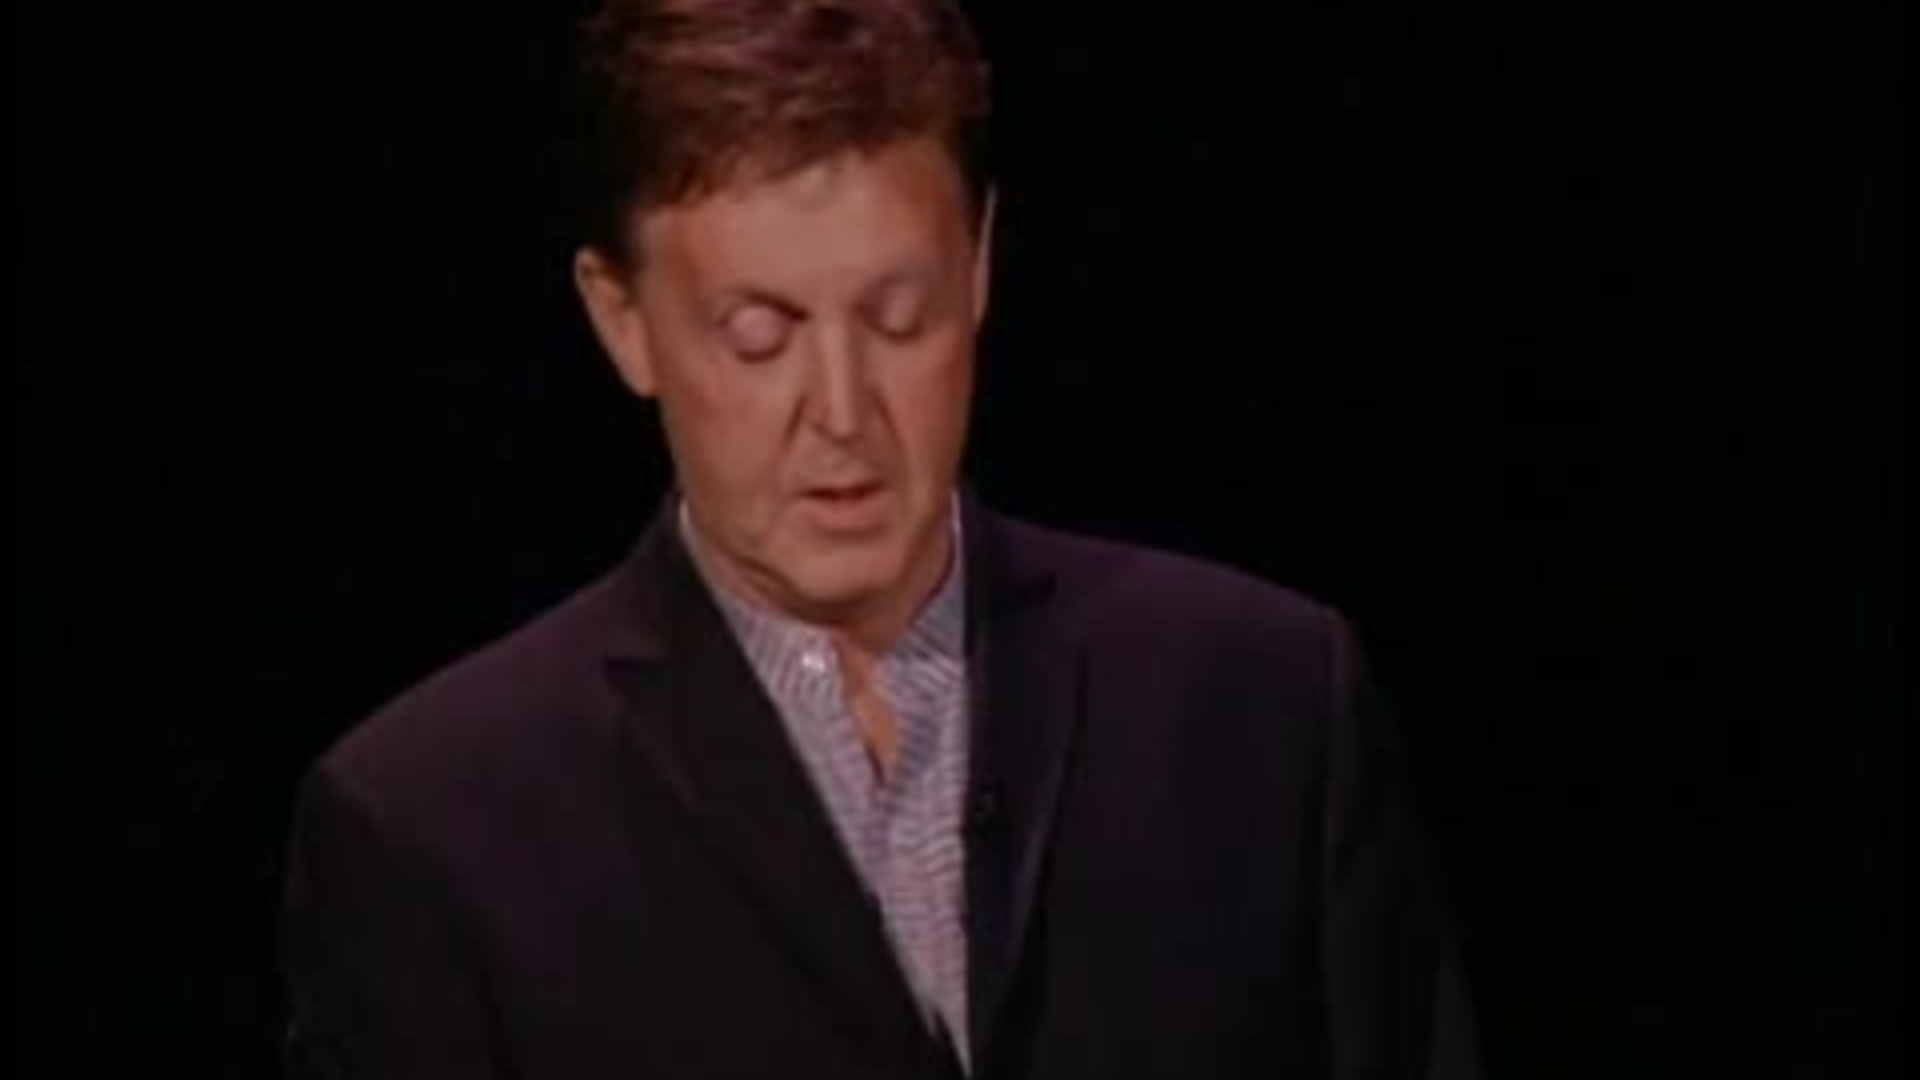 EntertainmentAir Date 06 11 2001 Paul McCartney Talks About His Book Of Poems Songwriting Painting And The Importance Family